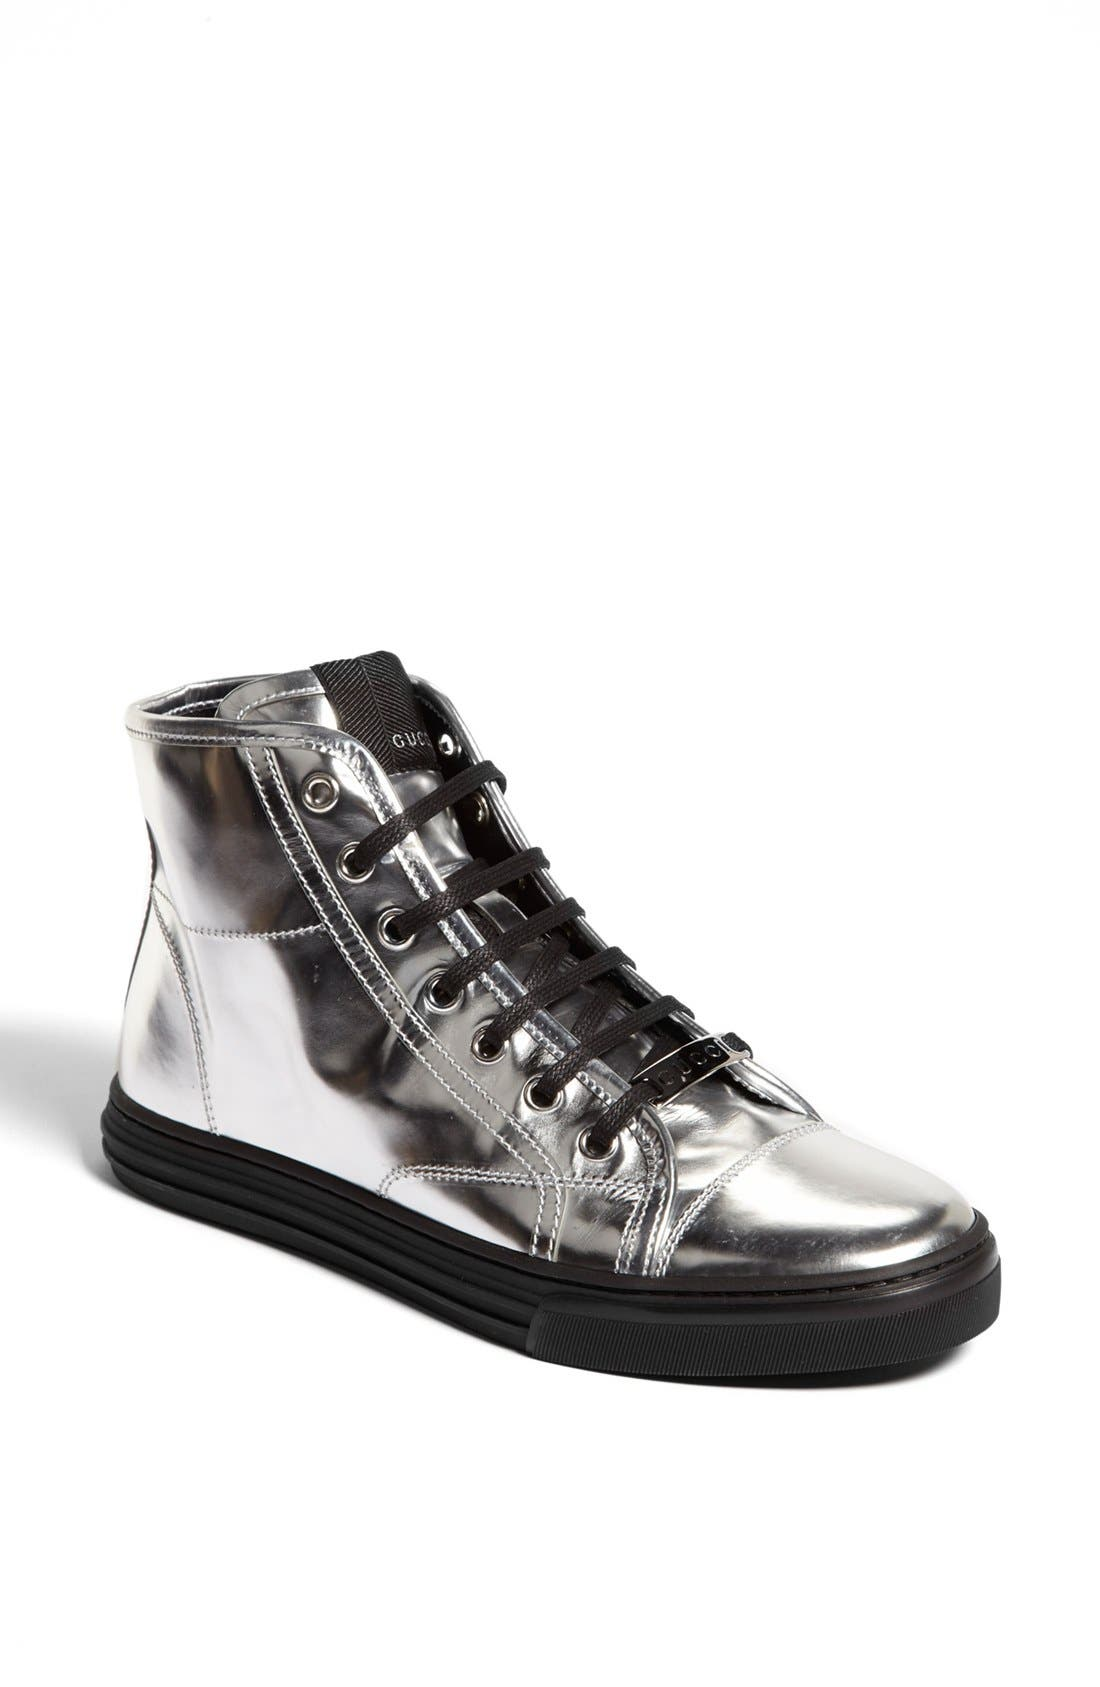 Main Image - Gucci 'California' Metallic High Top Sneaker